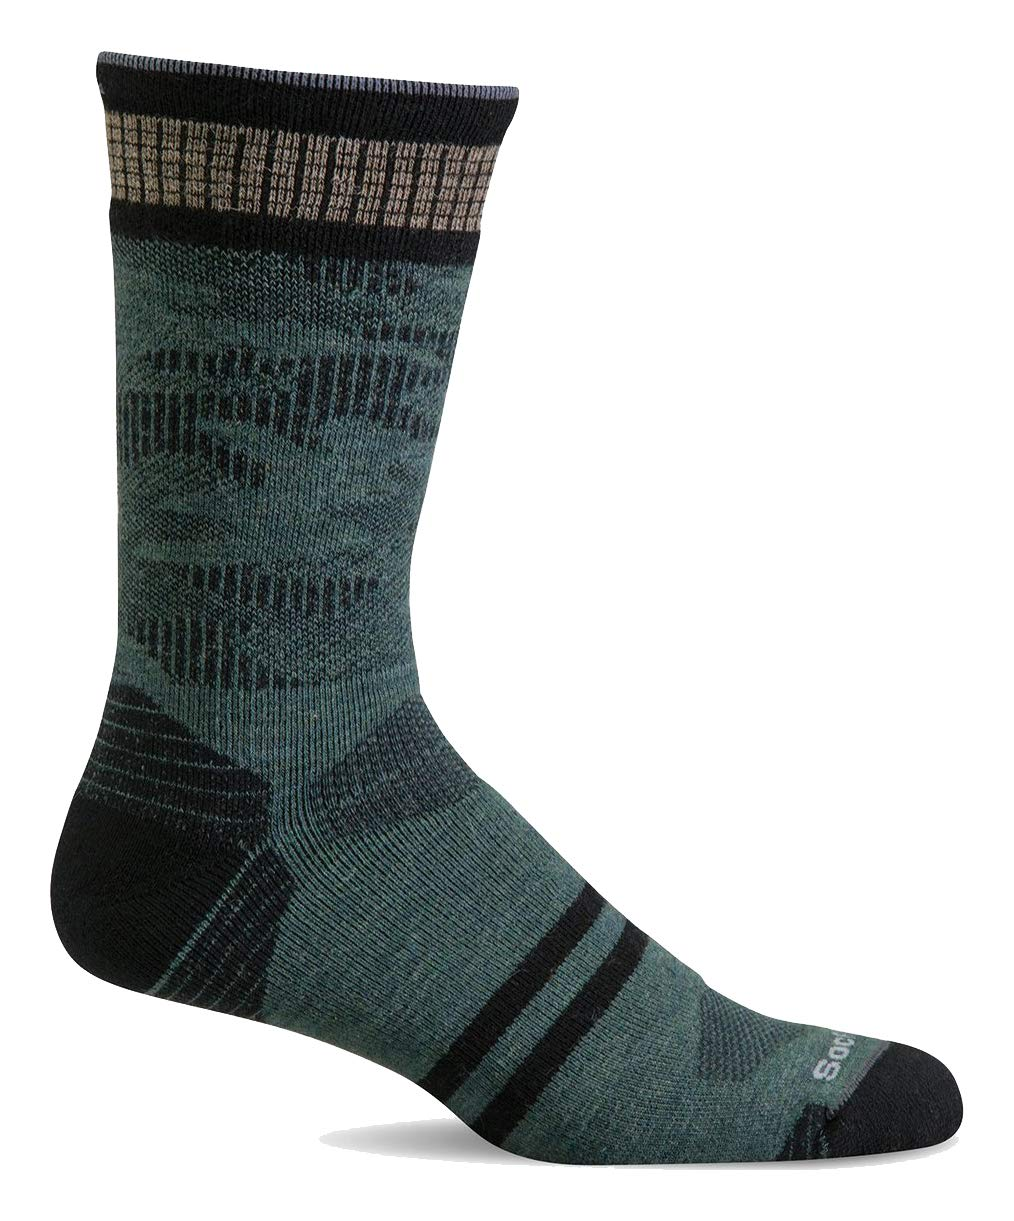 Sockwell Men's Camo Crew Moderate Graduated Compression Sock, Woodland - L/XL by Sockwell